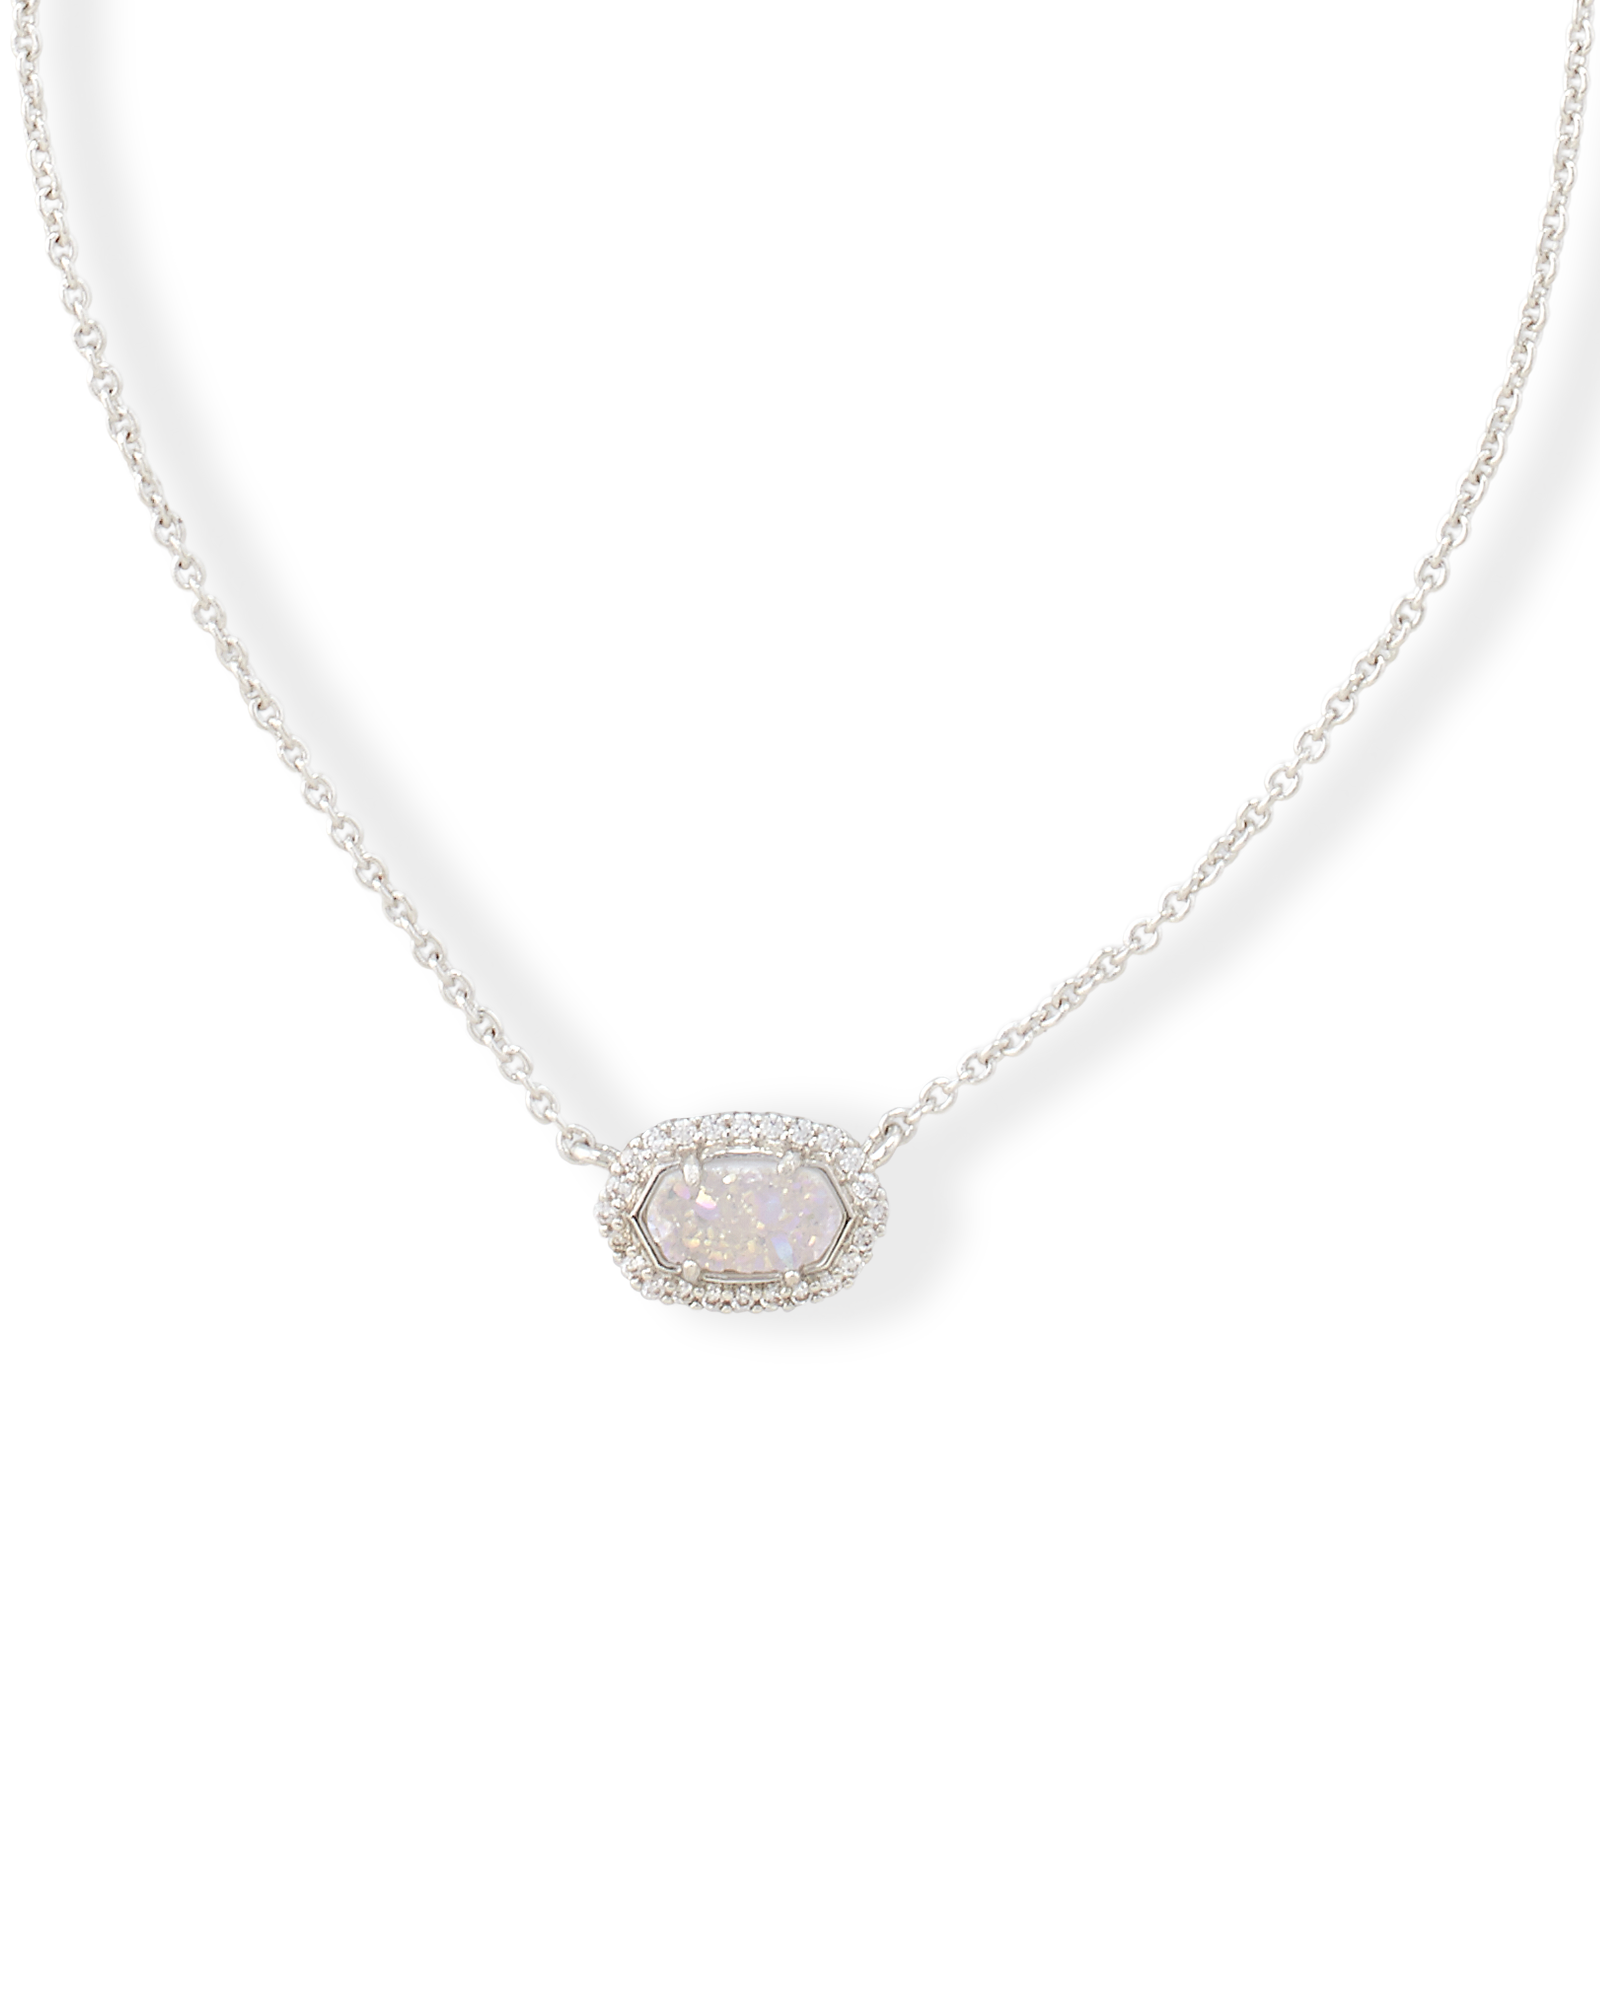 a6841ca5c Chelsea Pendant Necklace in Silver - Kendra Scott Weddings ...